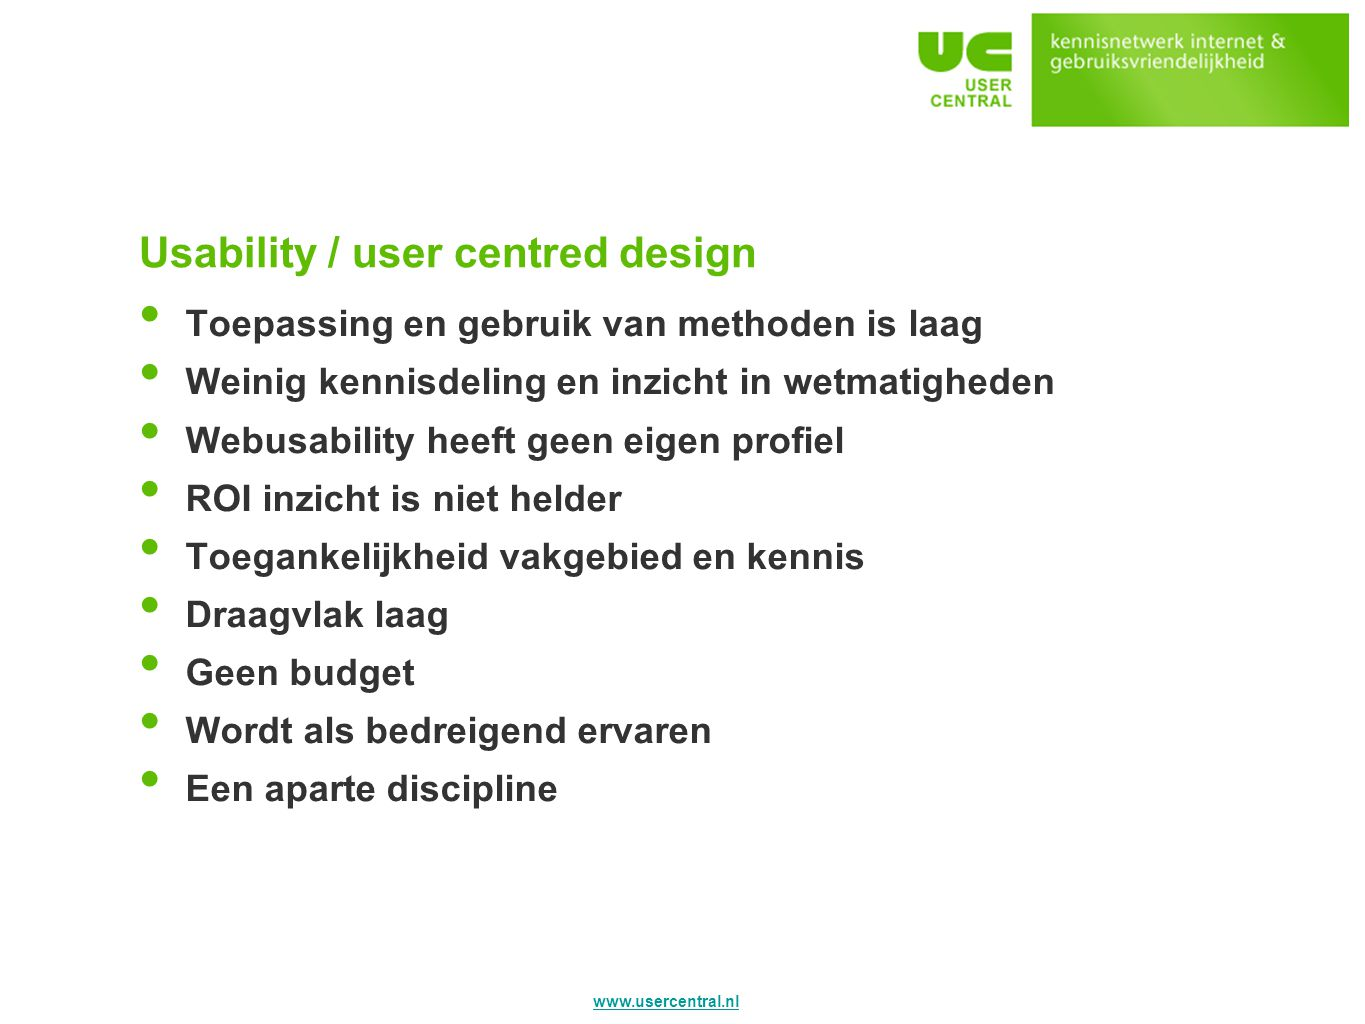 Usability / user centred design